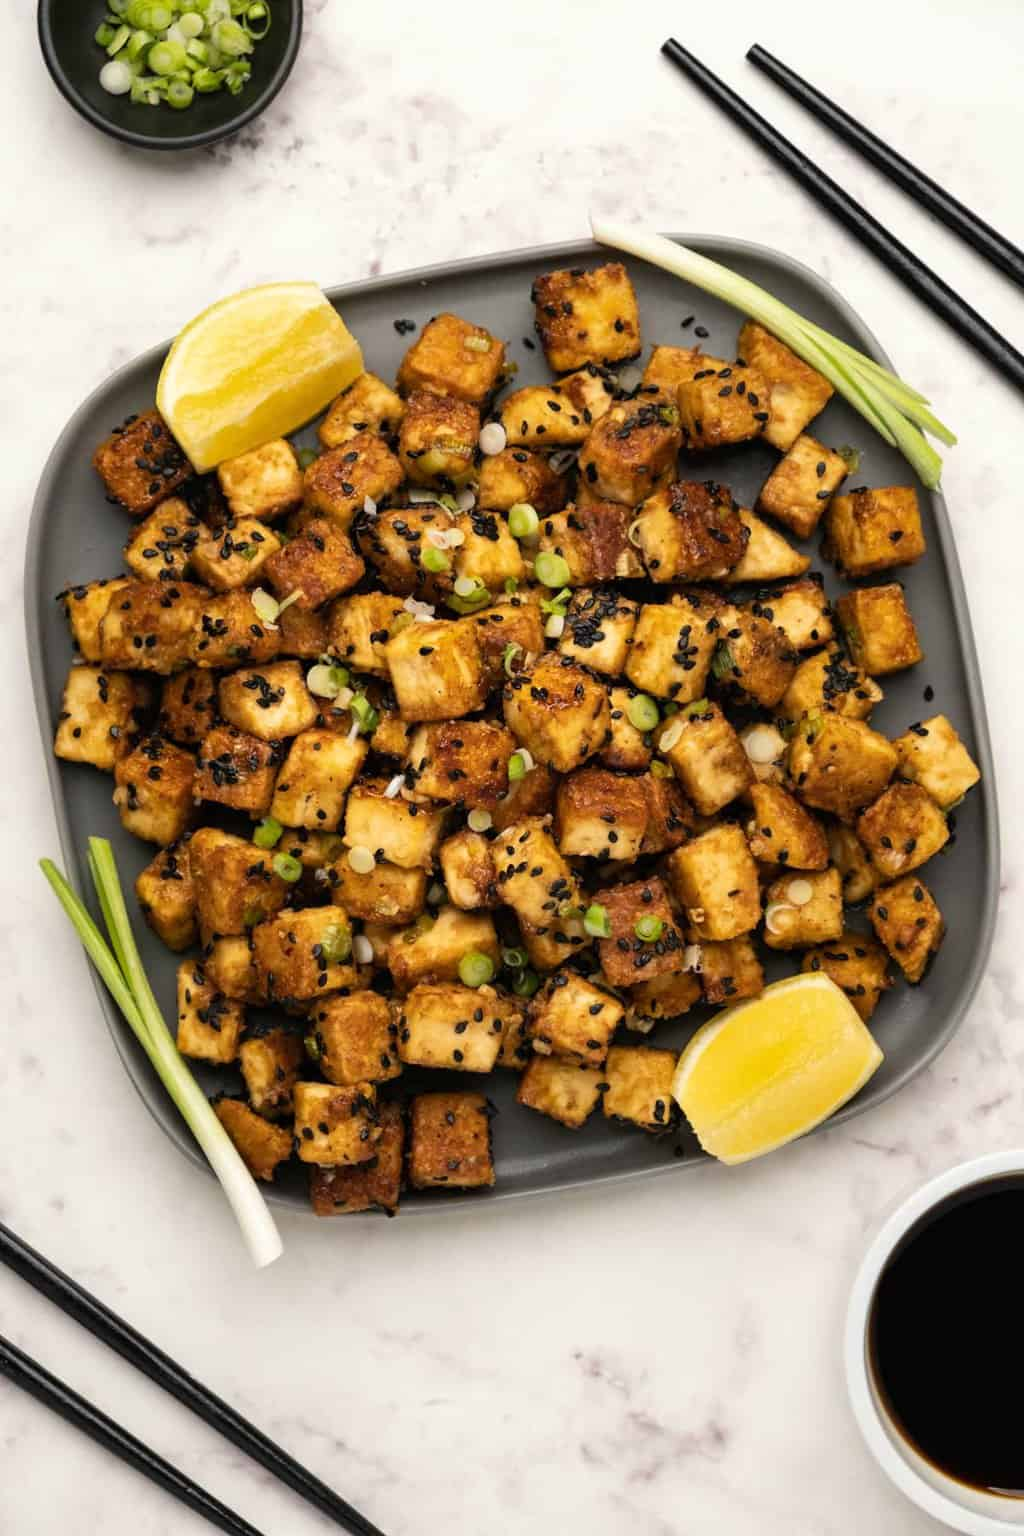 Fried Tofu with black sesame seeds and spring onion on a plate.